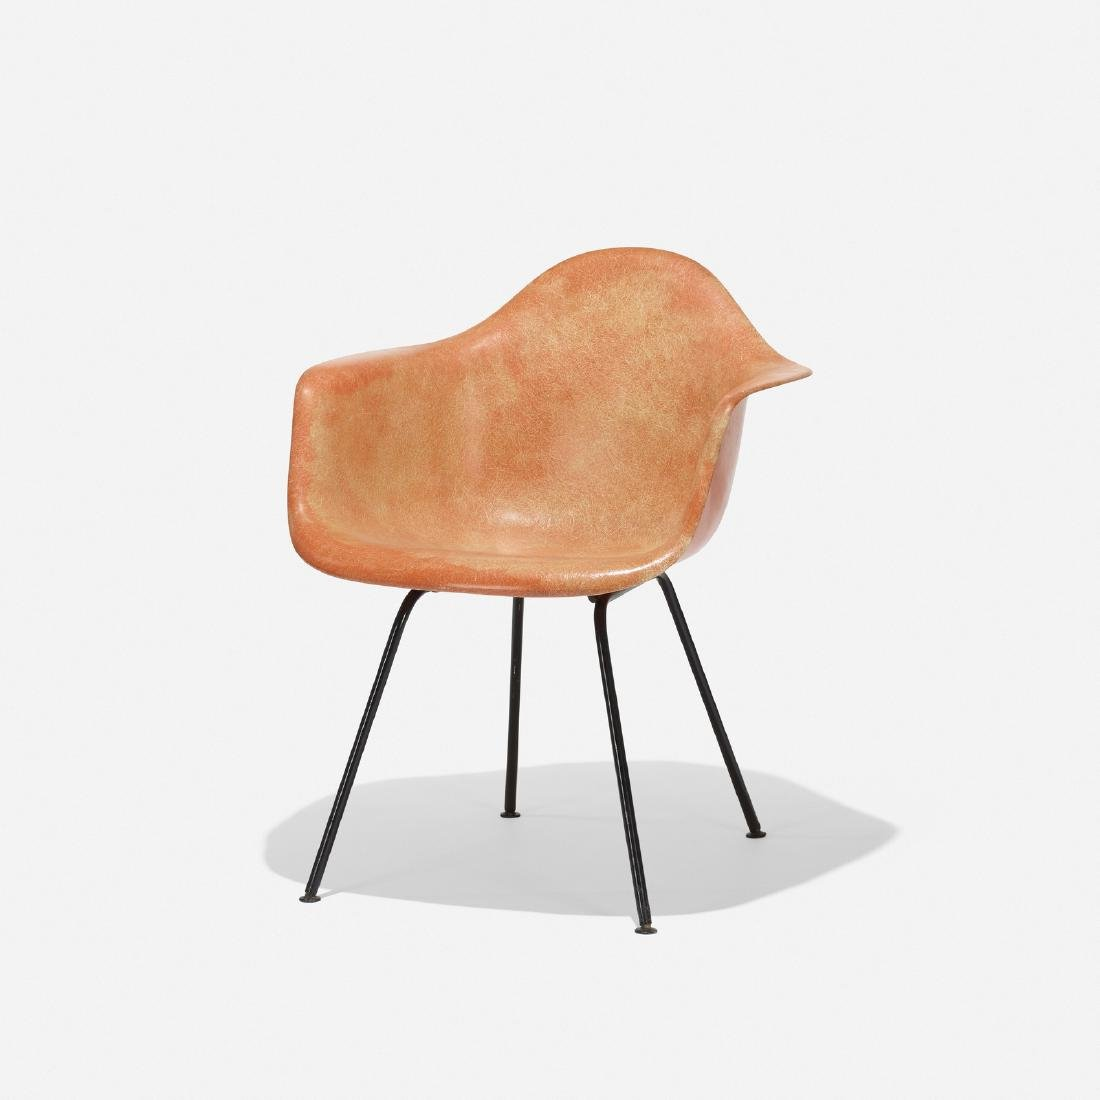 Charles and Ray Eames, DAX